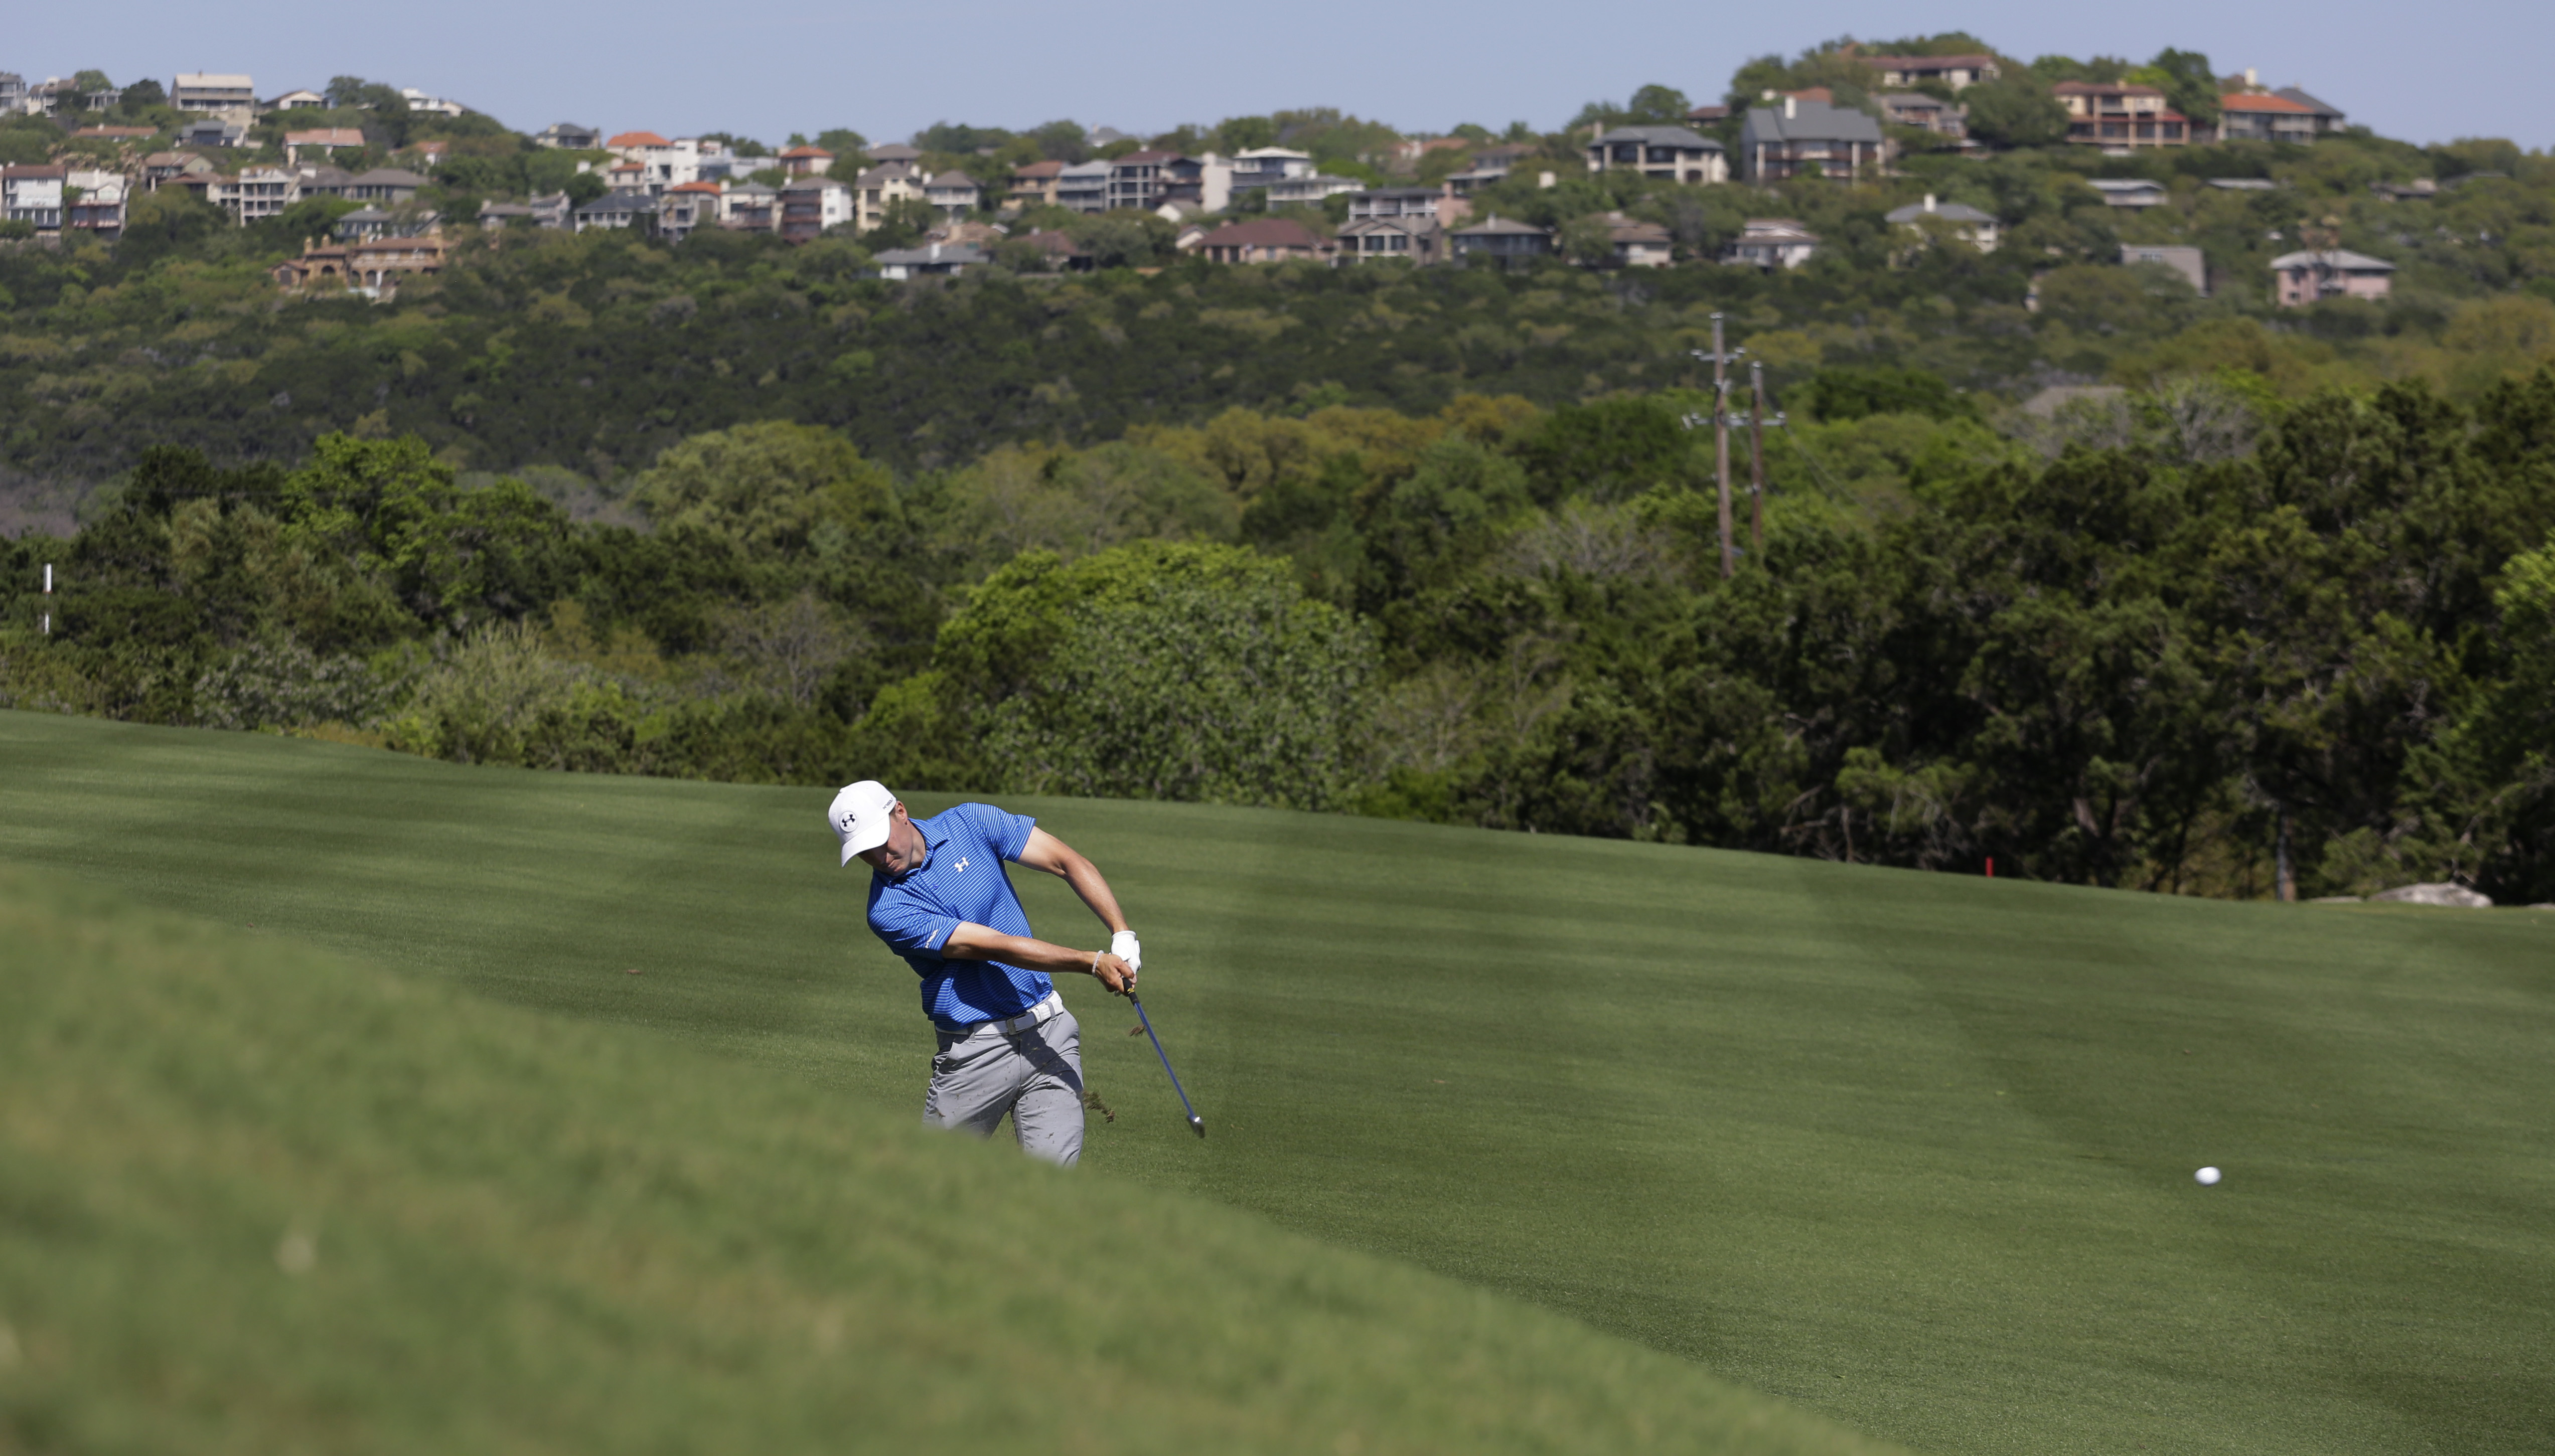 Jordan Spieth hits on the second hole during round-robin play at the Dell Technologies Match Play golf tournament at Austin County Club, Thursday, March 23, 2017, in Austin, Texas. (AP Photo/Eric Gay)